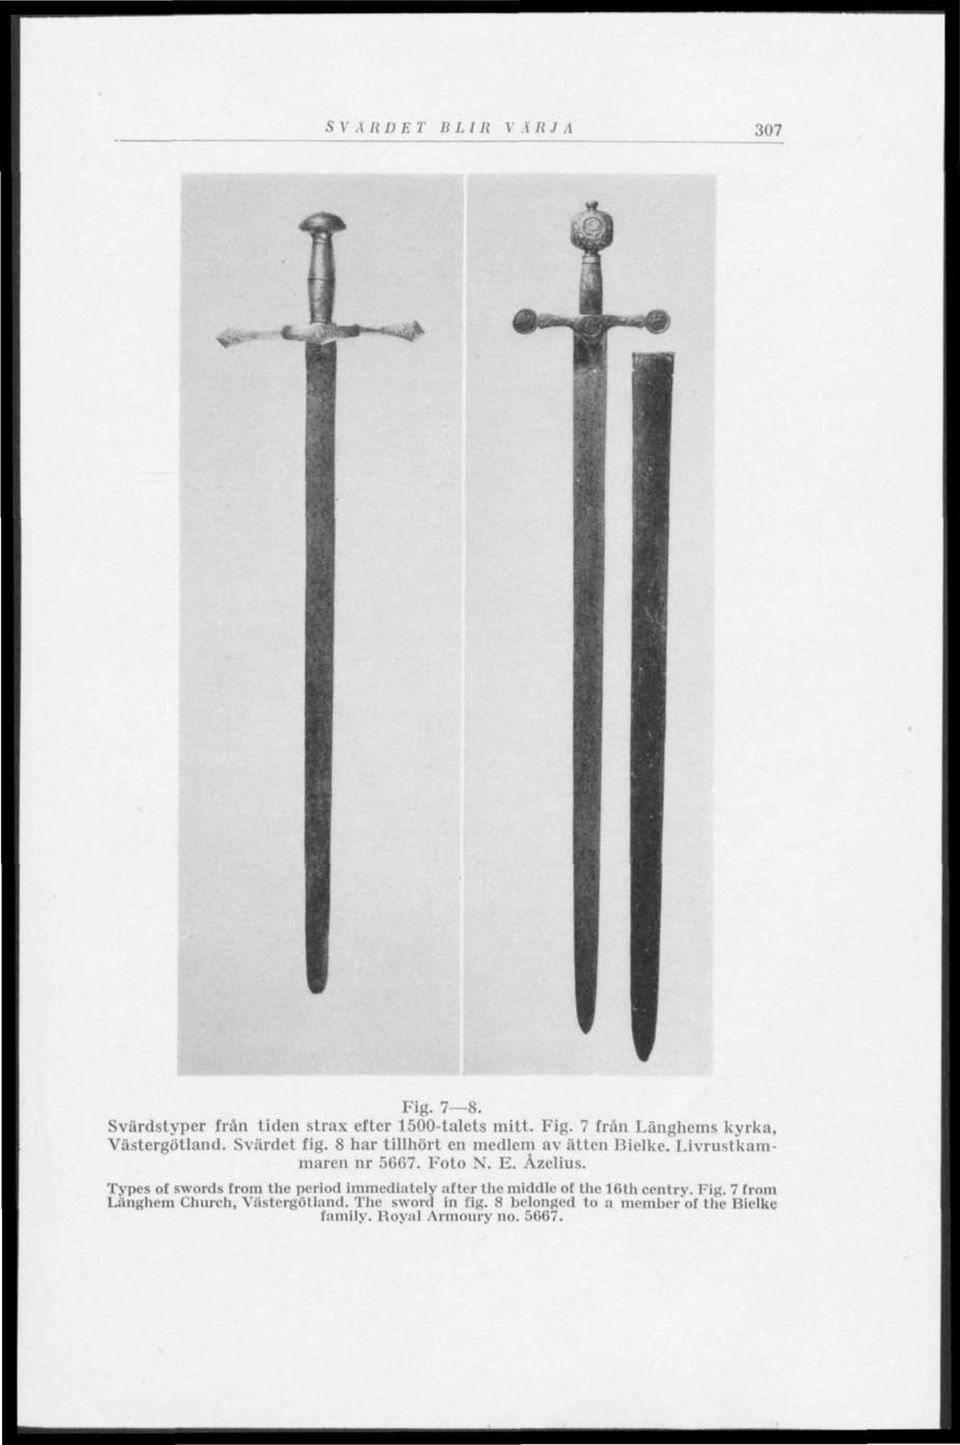 Types of swords from the period immediately after the middle ot the 16lh centry. Tig.